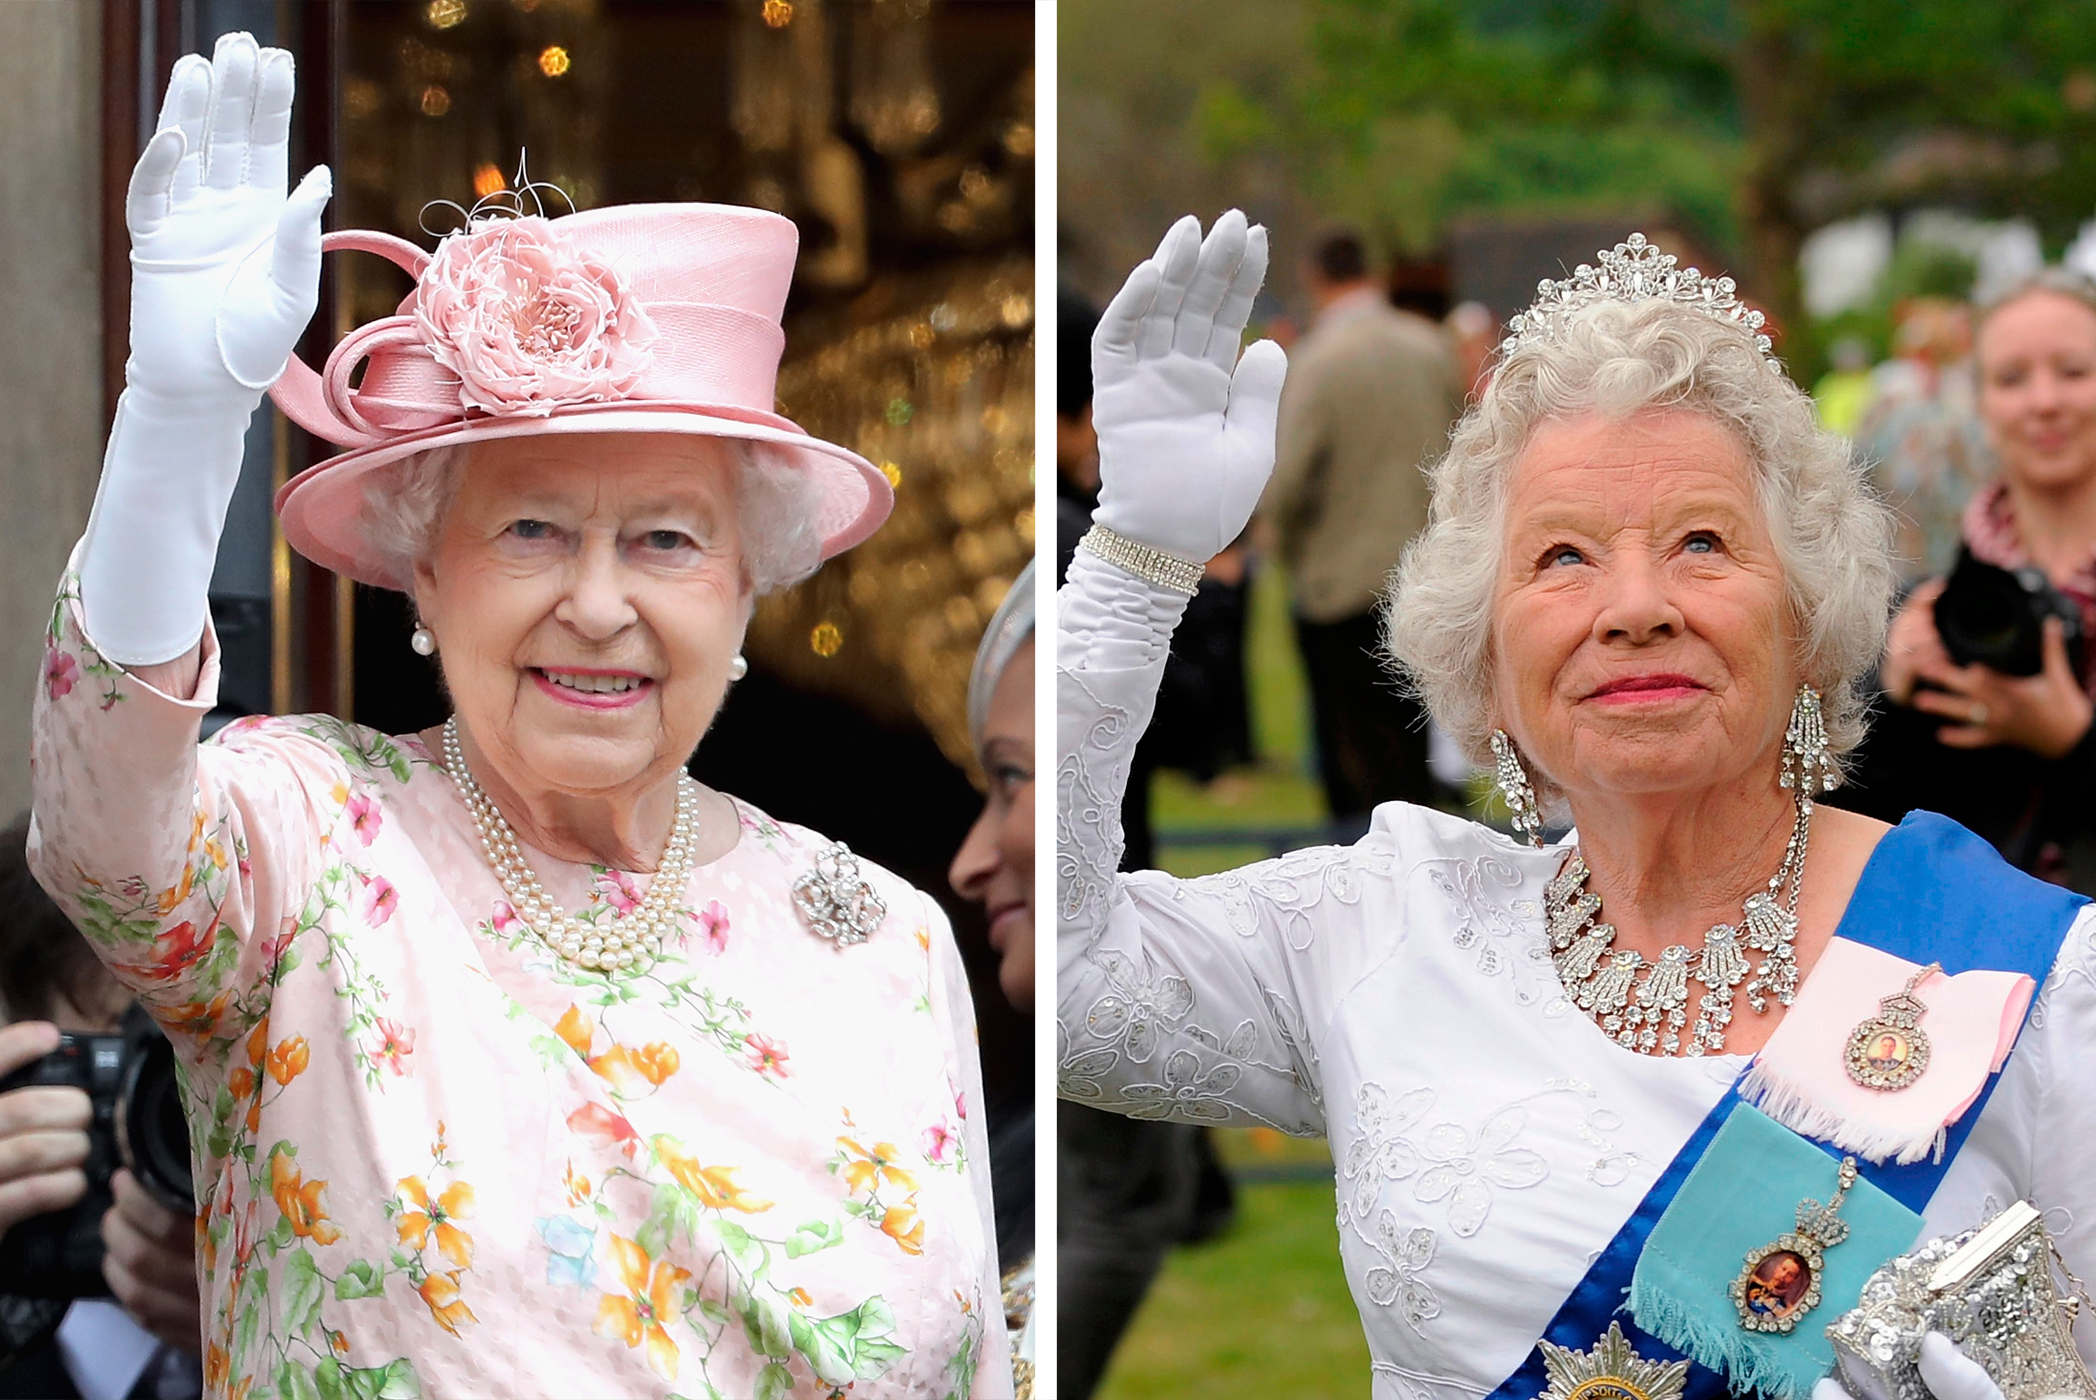 (left) Queen Elizabeth II waves from the balcony of the Town Hall during a visit to Liverpool on June 22, 2016 in Liverpool, England. ; (right) Patricia Ford, a lookalike of Queen Elizabeth, waves at a gathering in Bucklebury near Reading on the day of the Royal Wedding between Britain's Prince William and Kate Middleton in Westminster Abbey in London April 29 2011.